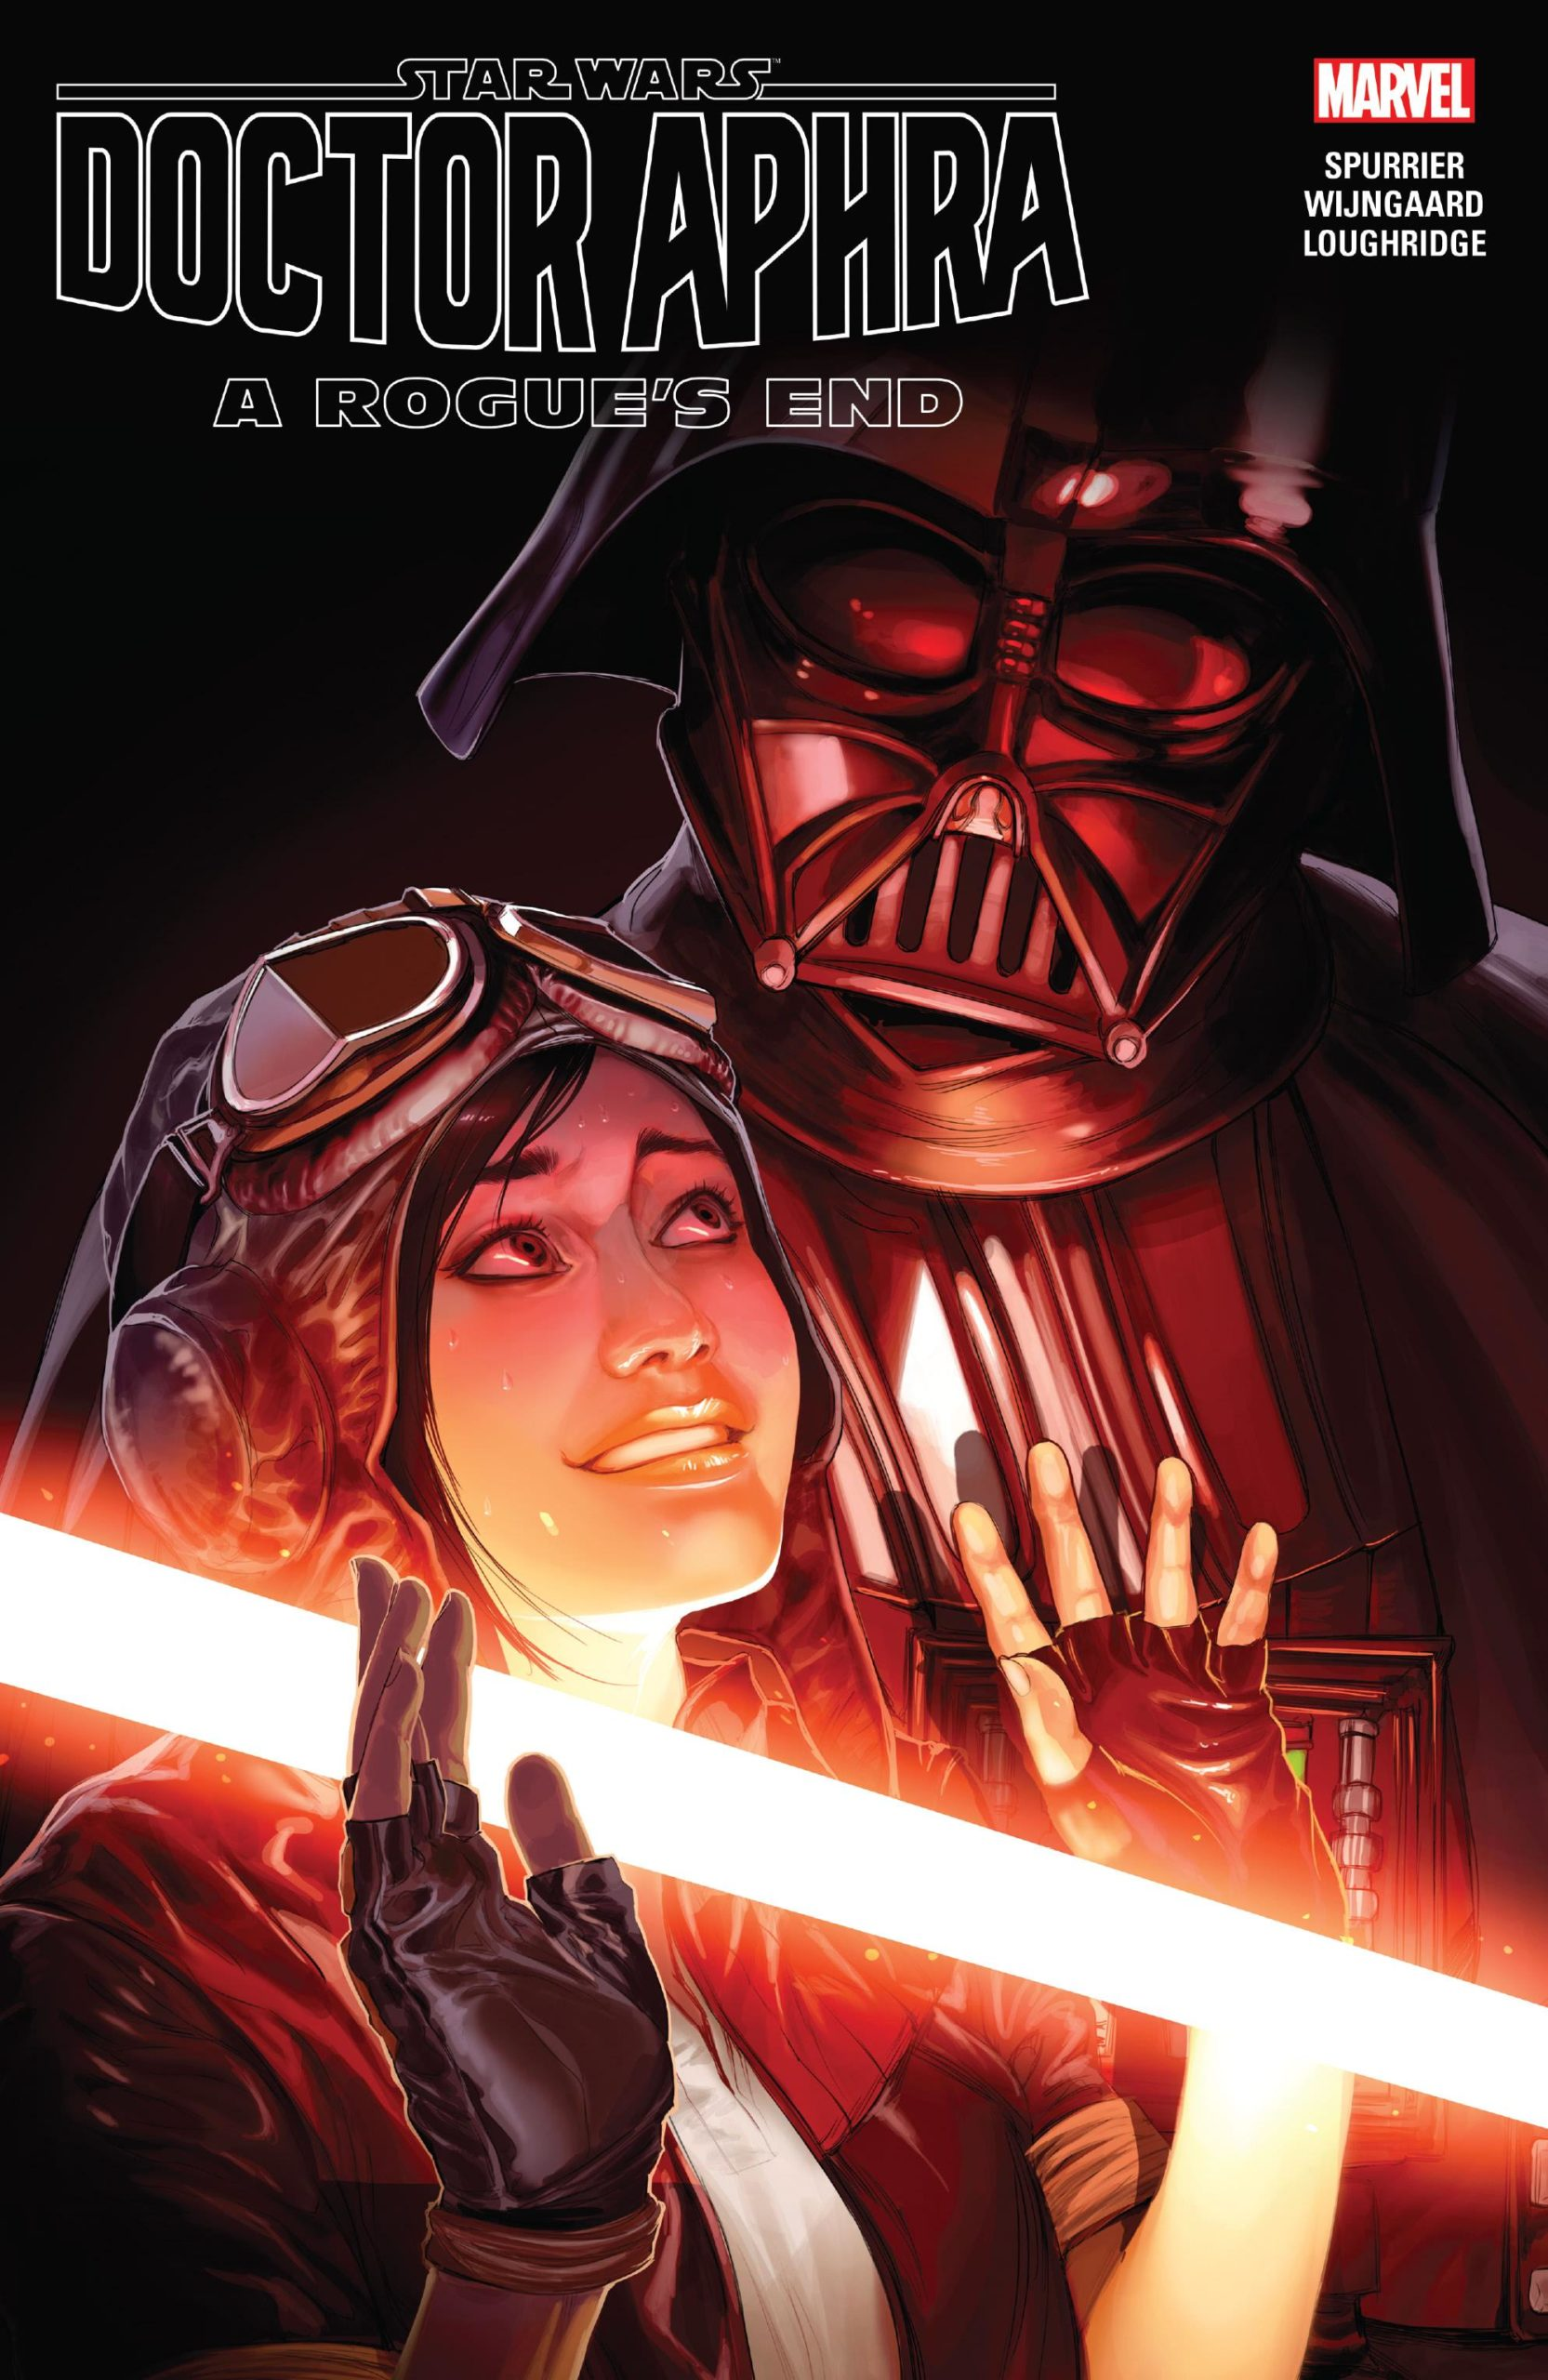 Doctor Aphra Volume 7: A Rogue's End (11.02.2020)